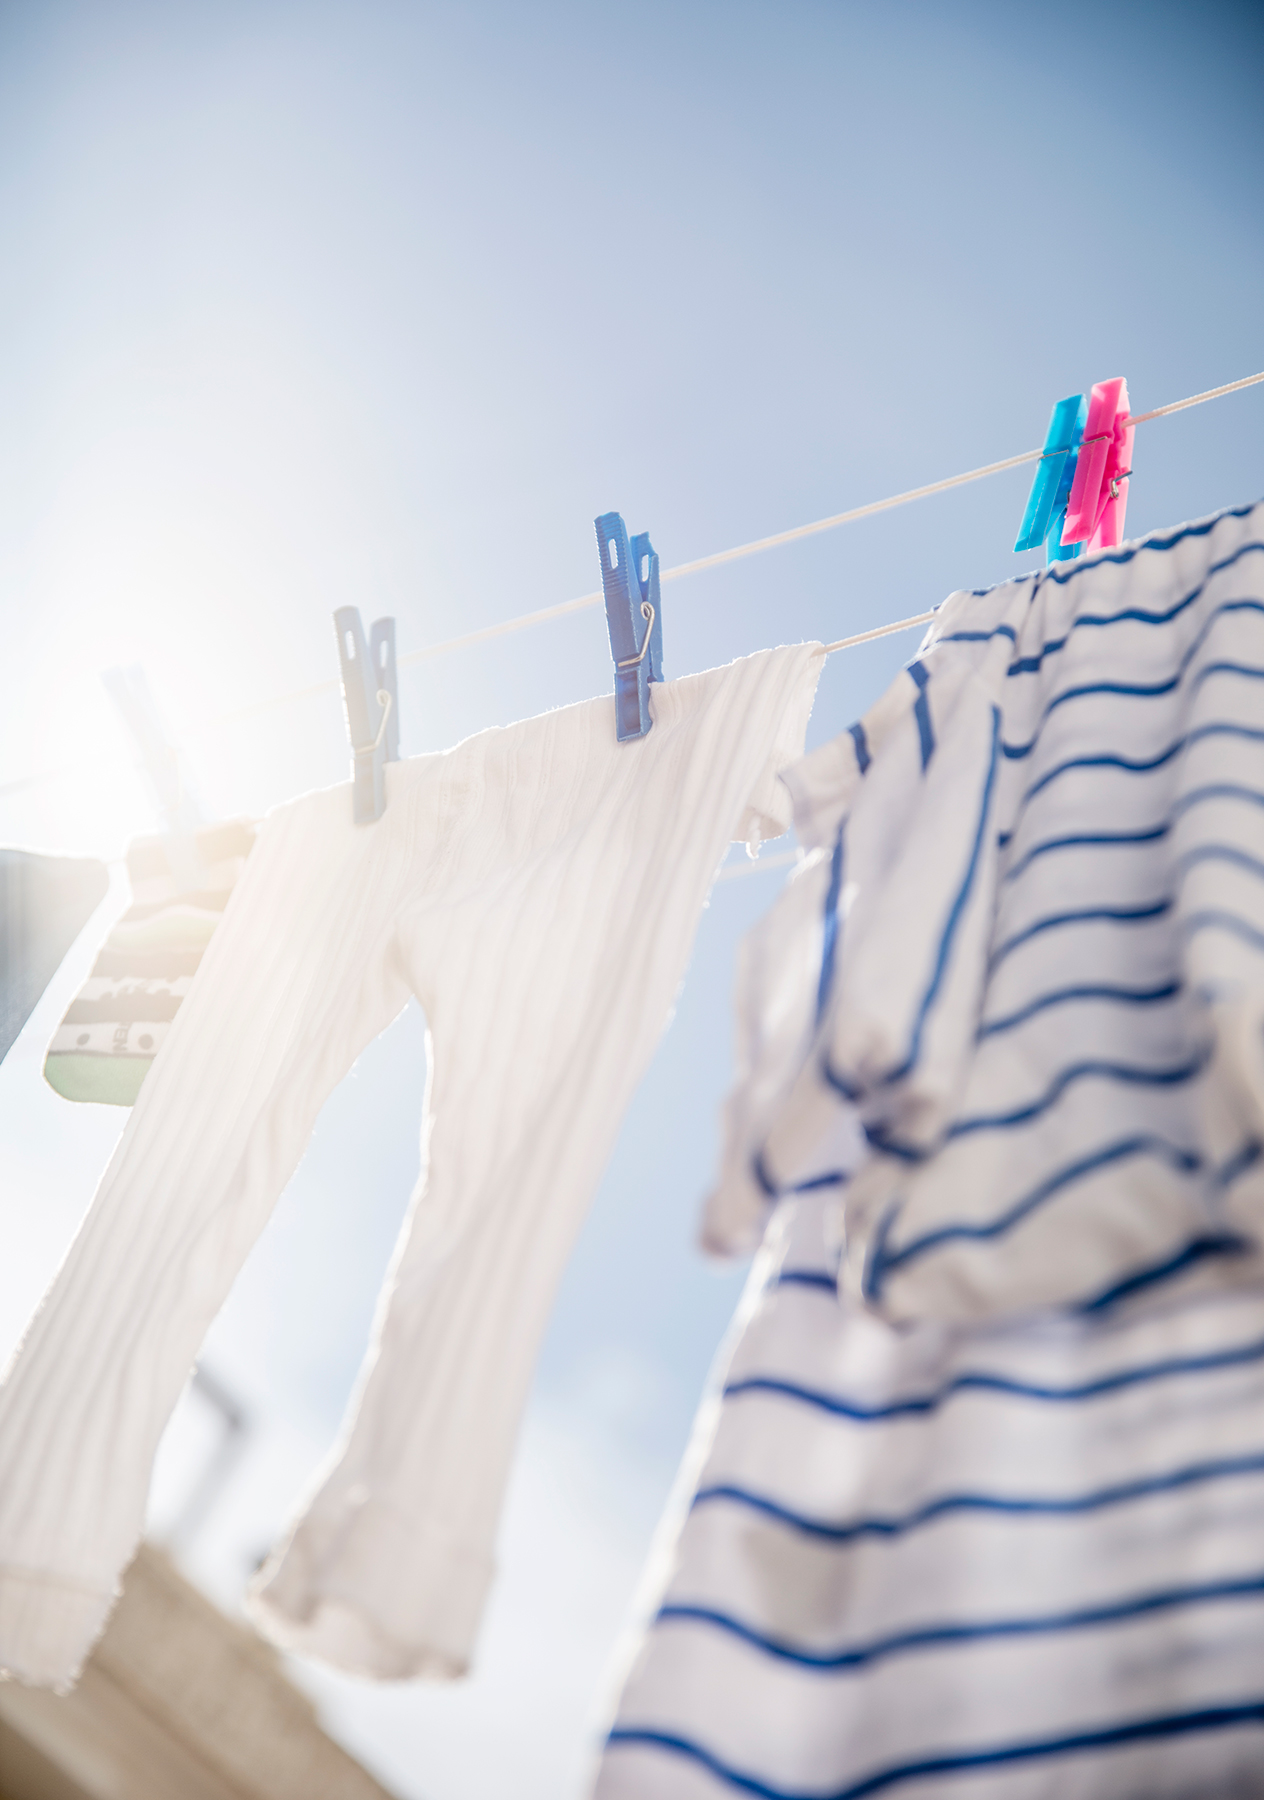 Laundry hanging from clothesline